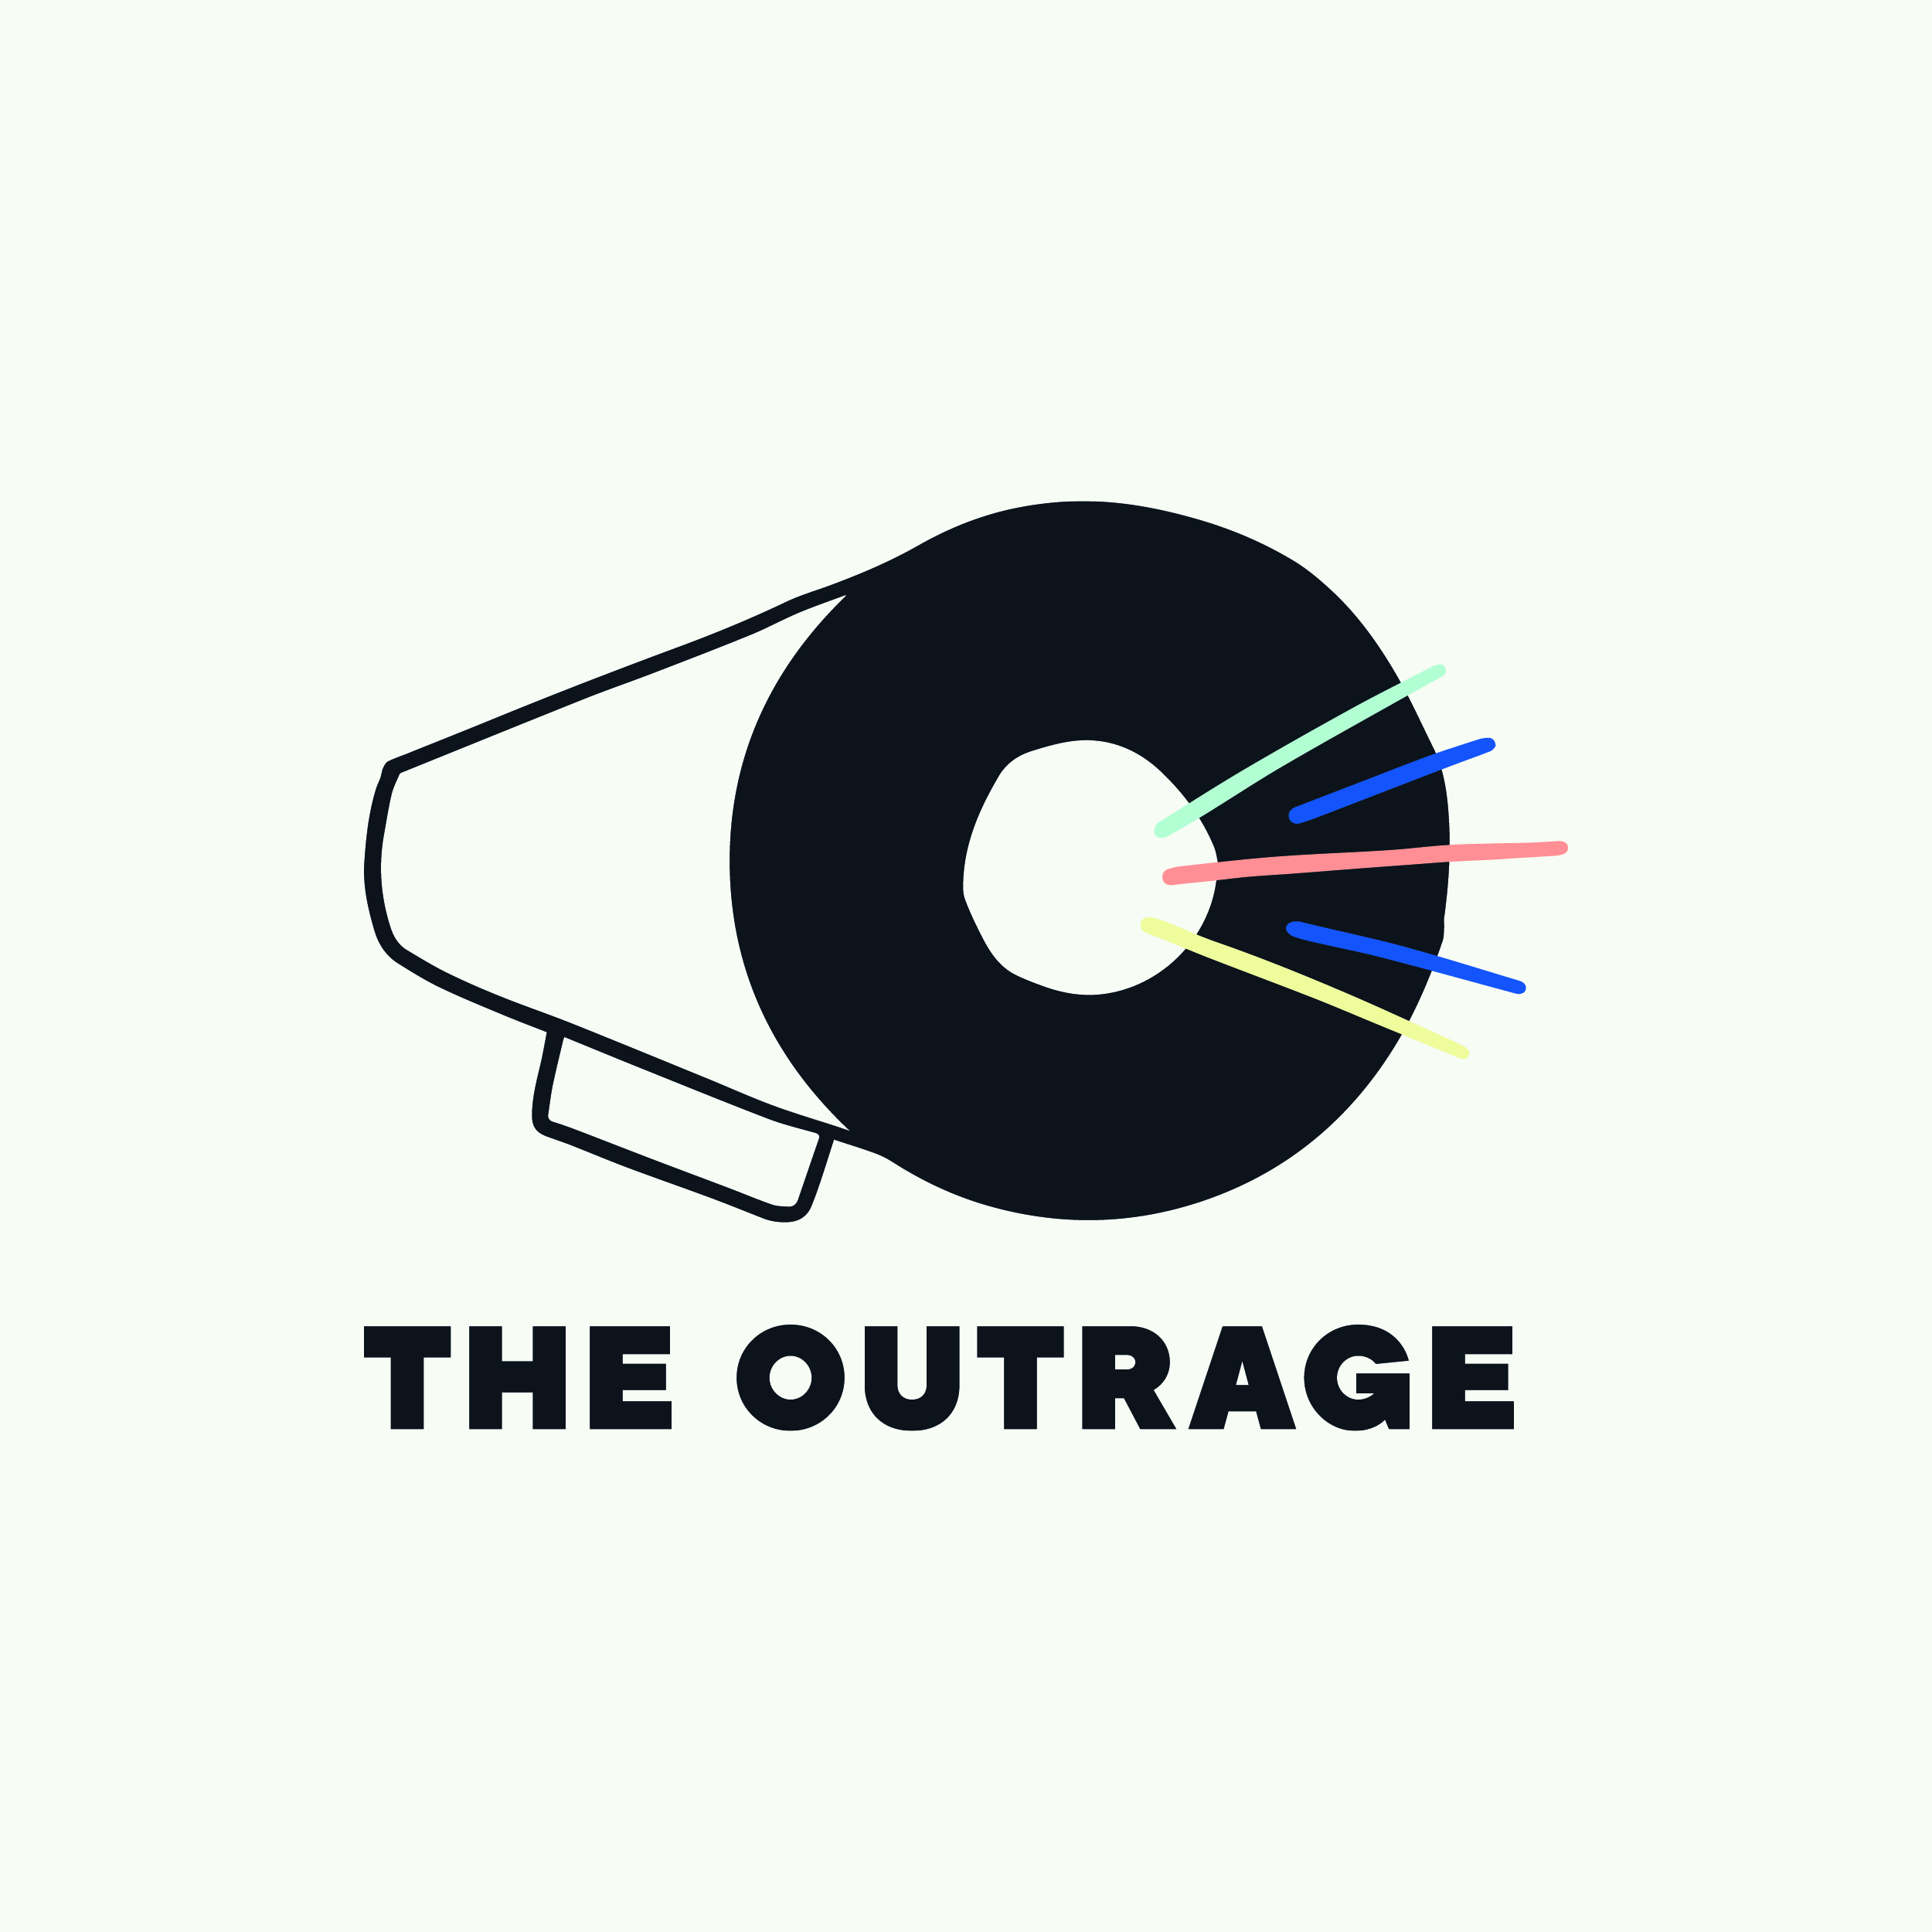 THE-OUTRAGE-SPREAD-05.jpg